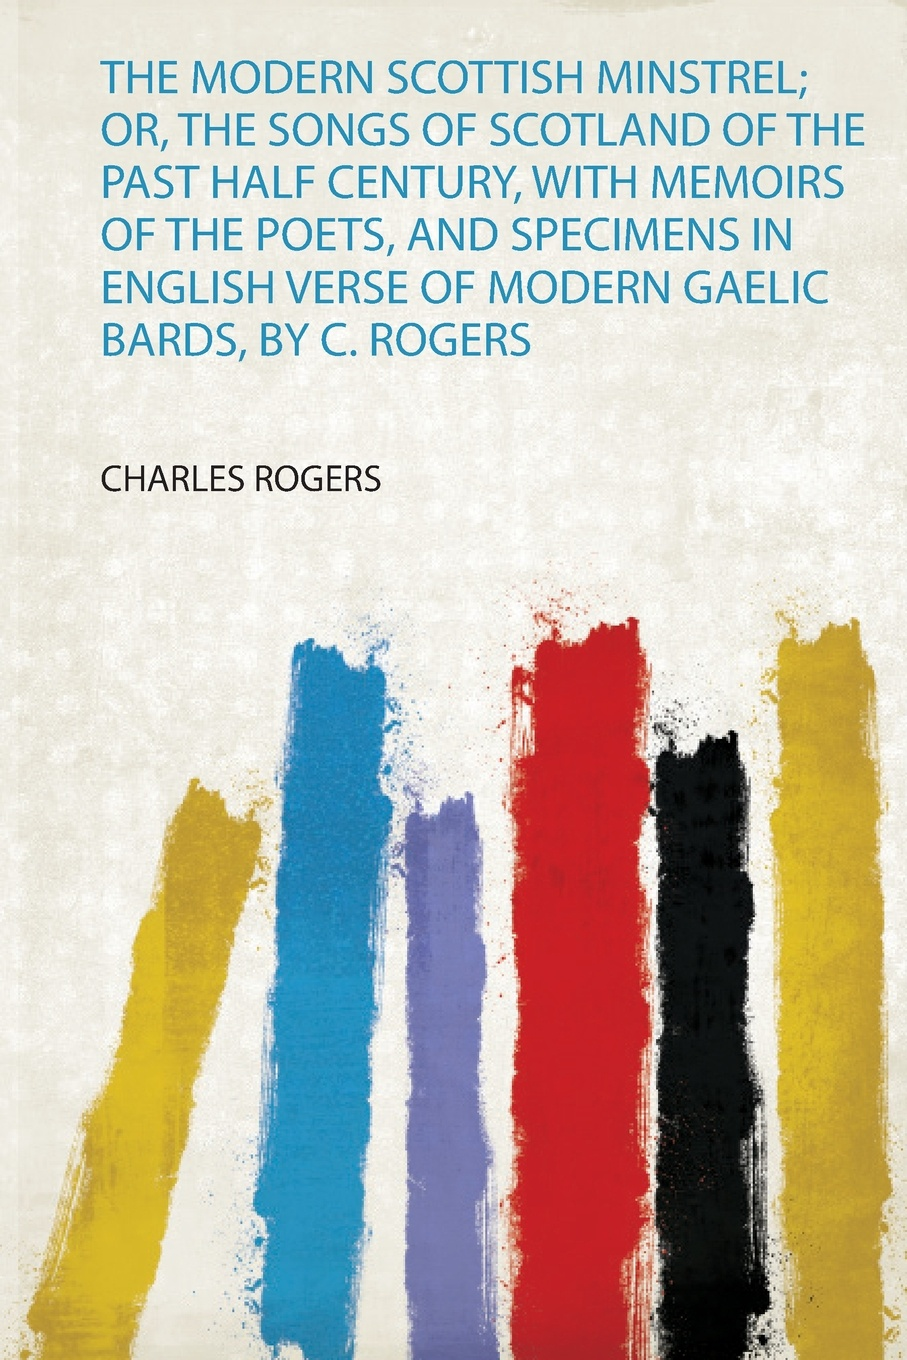 Charles Rogers The Modern Scottish Minstrel; Or, the Songs of Scotland of the Past Half Century, With Memoirs of the Poets, and Specimens in English Verse of Modern Gaelic Bards, by C. Rogers